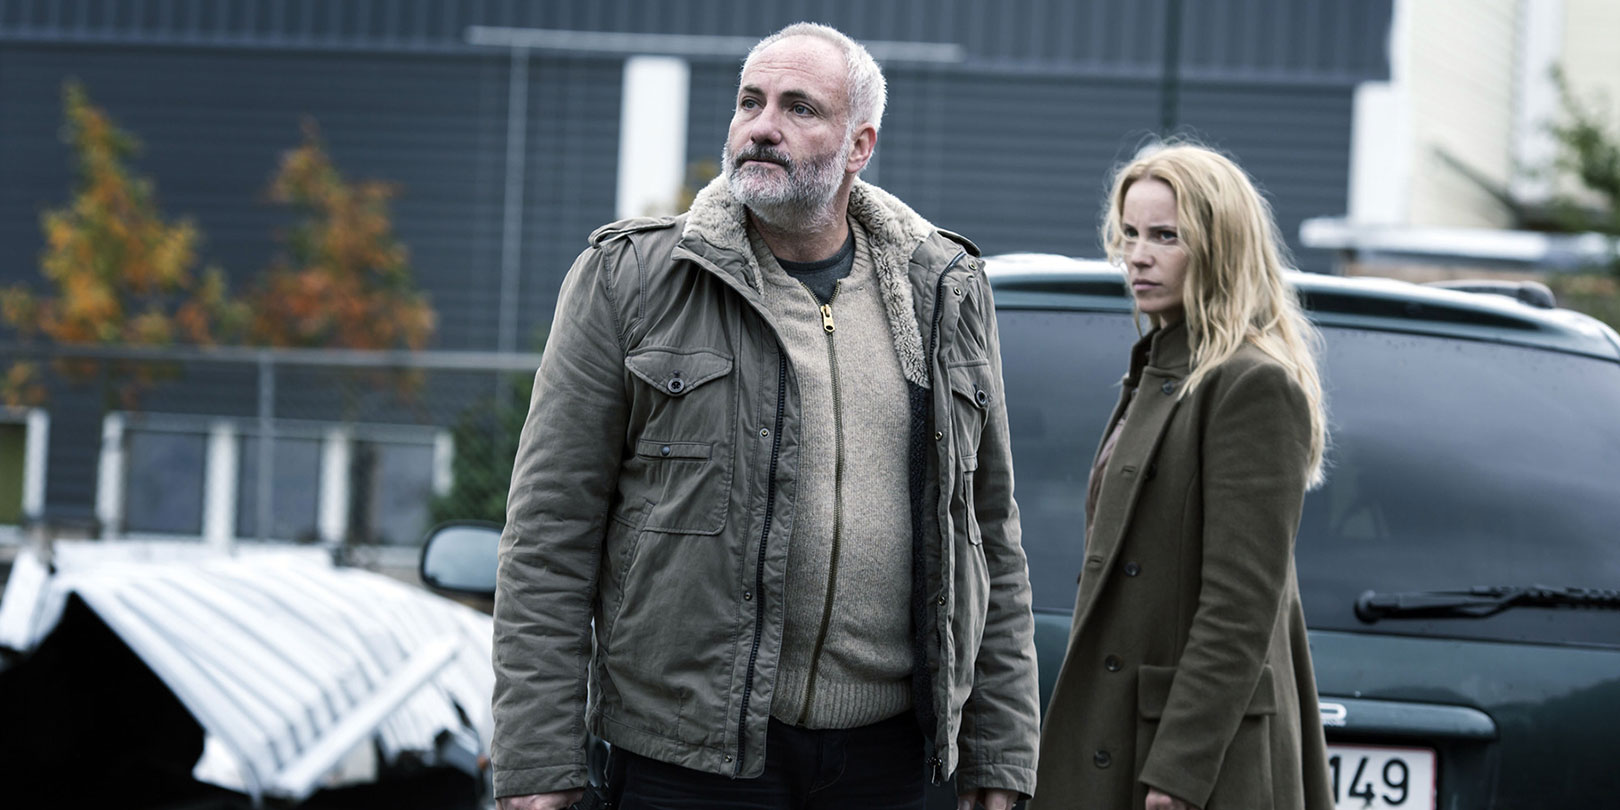 Programme Name: The Bridge - TX: 04/01/2014 - Episode: The Bridge - series 2 - ep 2 (No. 2) - Embargoed for publication until: n/a - Picture Shows:  Martin Rohde (KIM BODNIA), Saga Norén (SOFIA HELIN) - (C) ZDF - Photographer: Carolina Romare